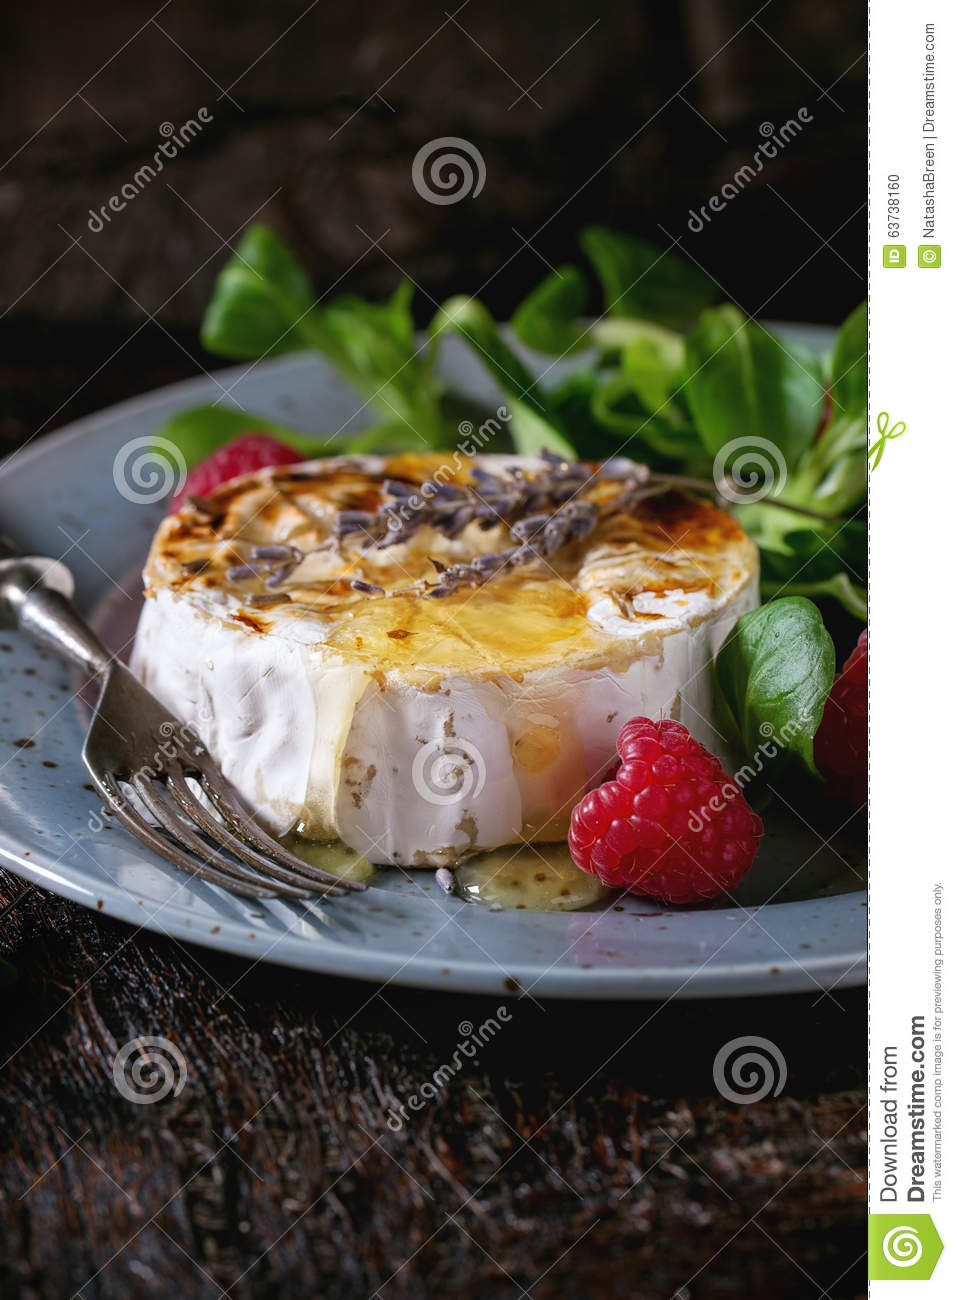 Baked Goat Cheese With Honey And Raspberries Stock Photo ...